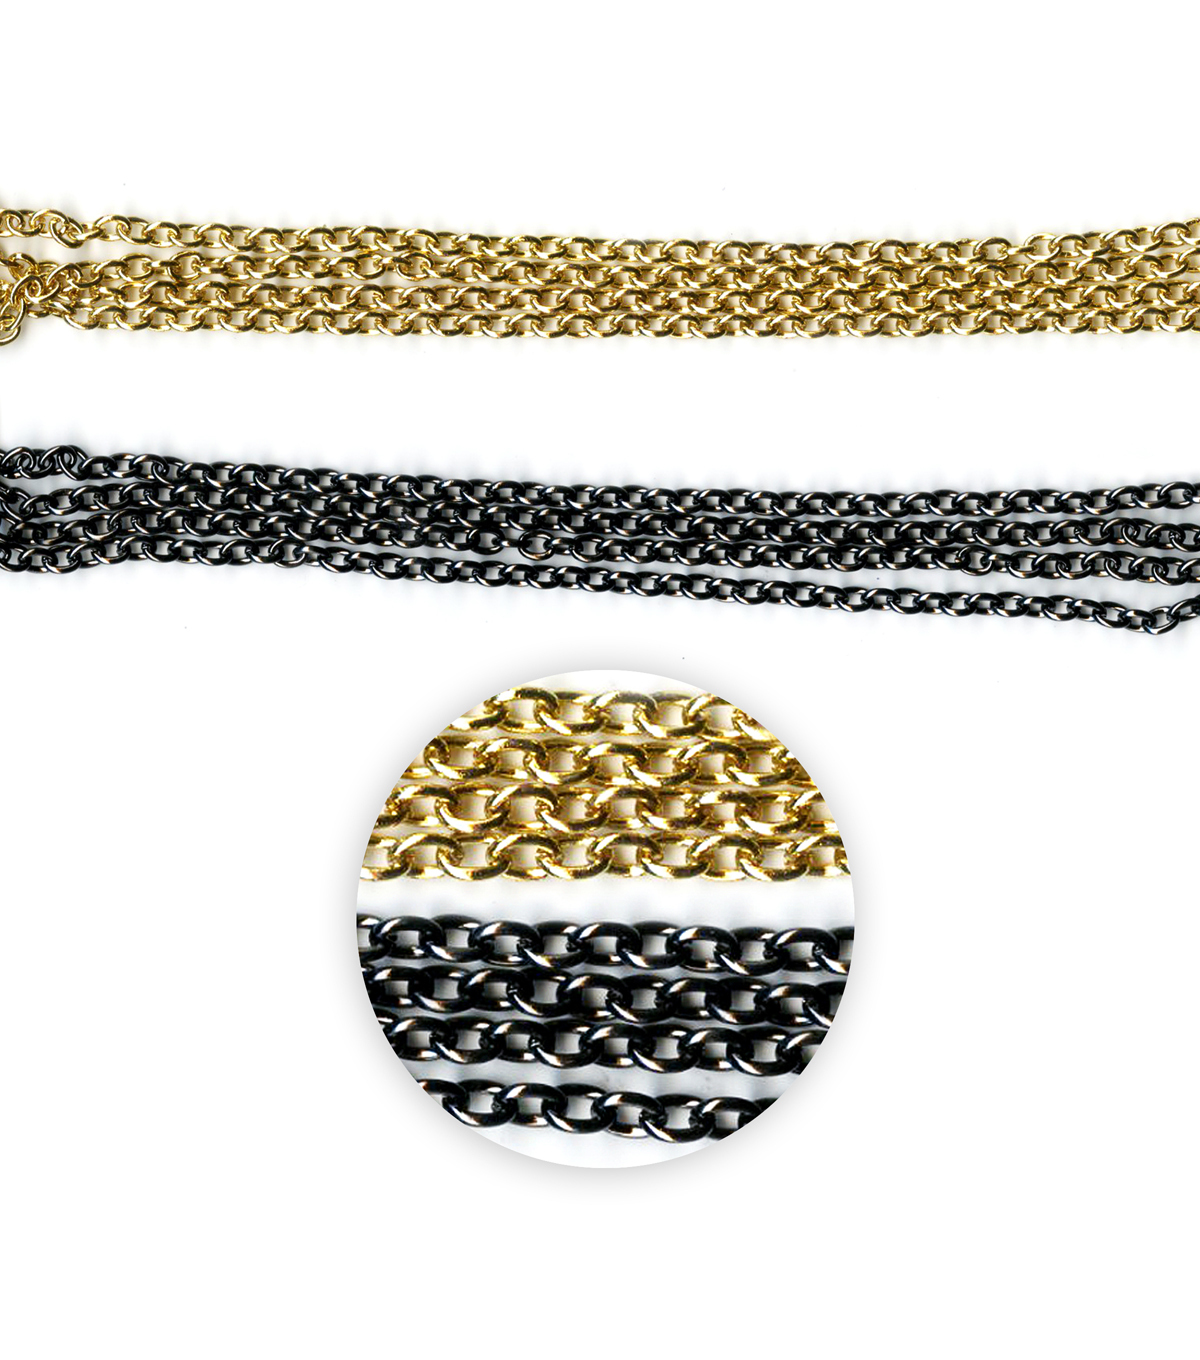 Blue Moon Beads Metal Chain, Oval Cable, Gold, Black Nickel-27\u0022